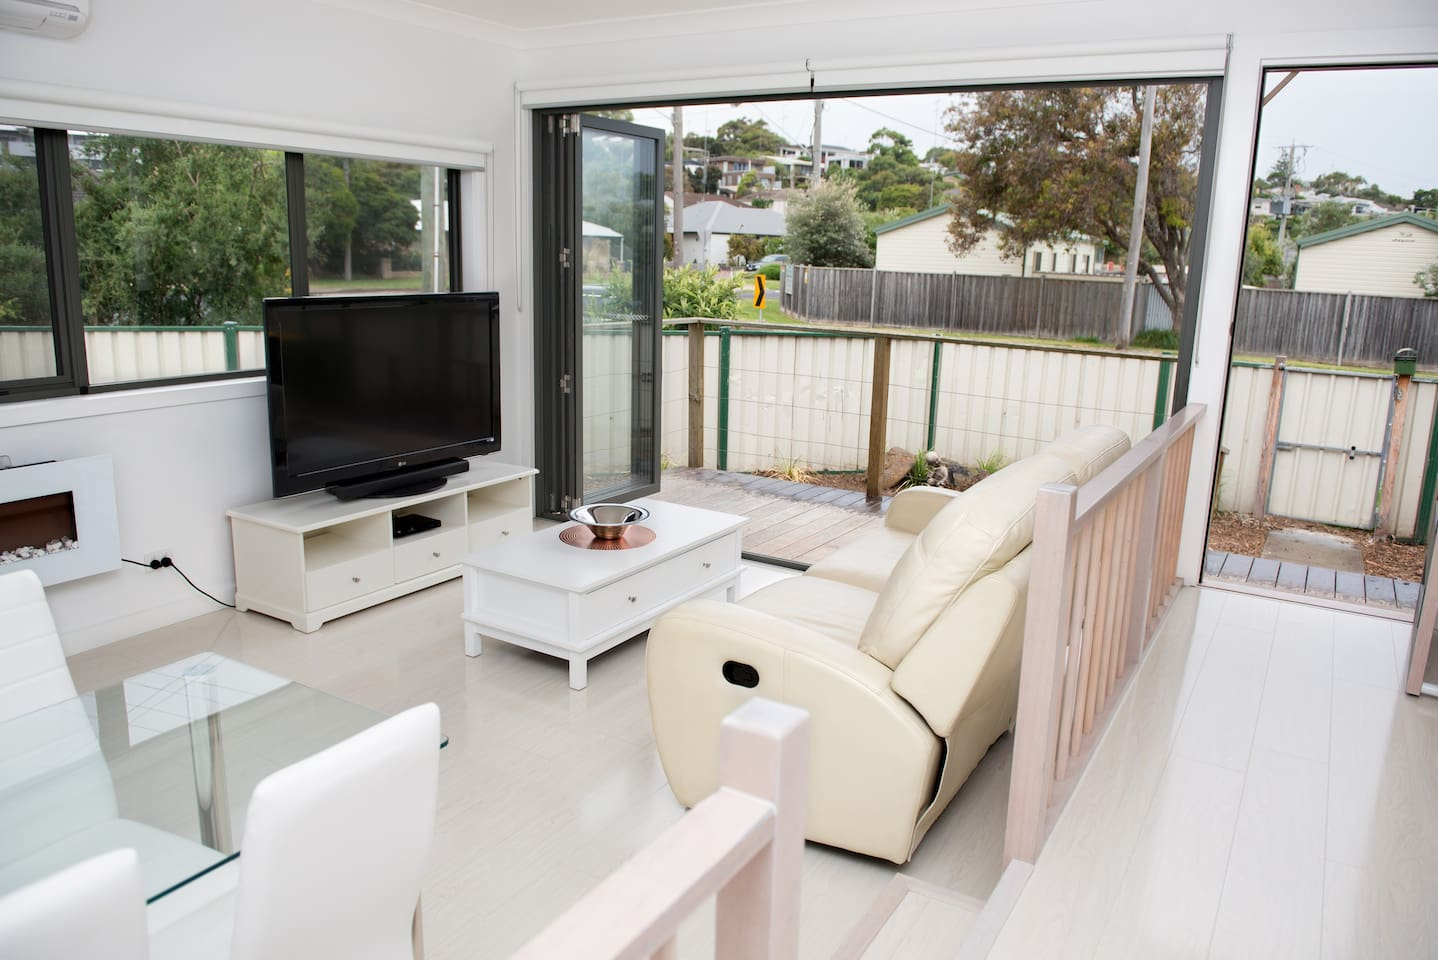 Ocean Grove is the perfect Coastal get away. Our Holiday unit is well located midway between the main shops and the Barwon River and Barwon Heads